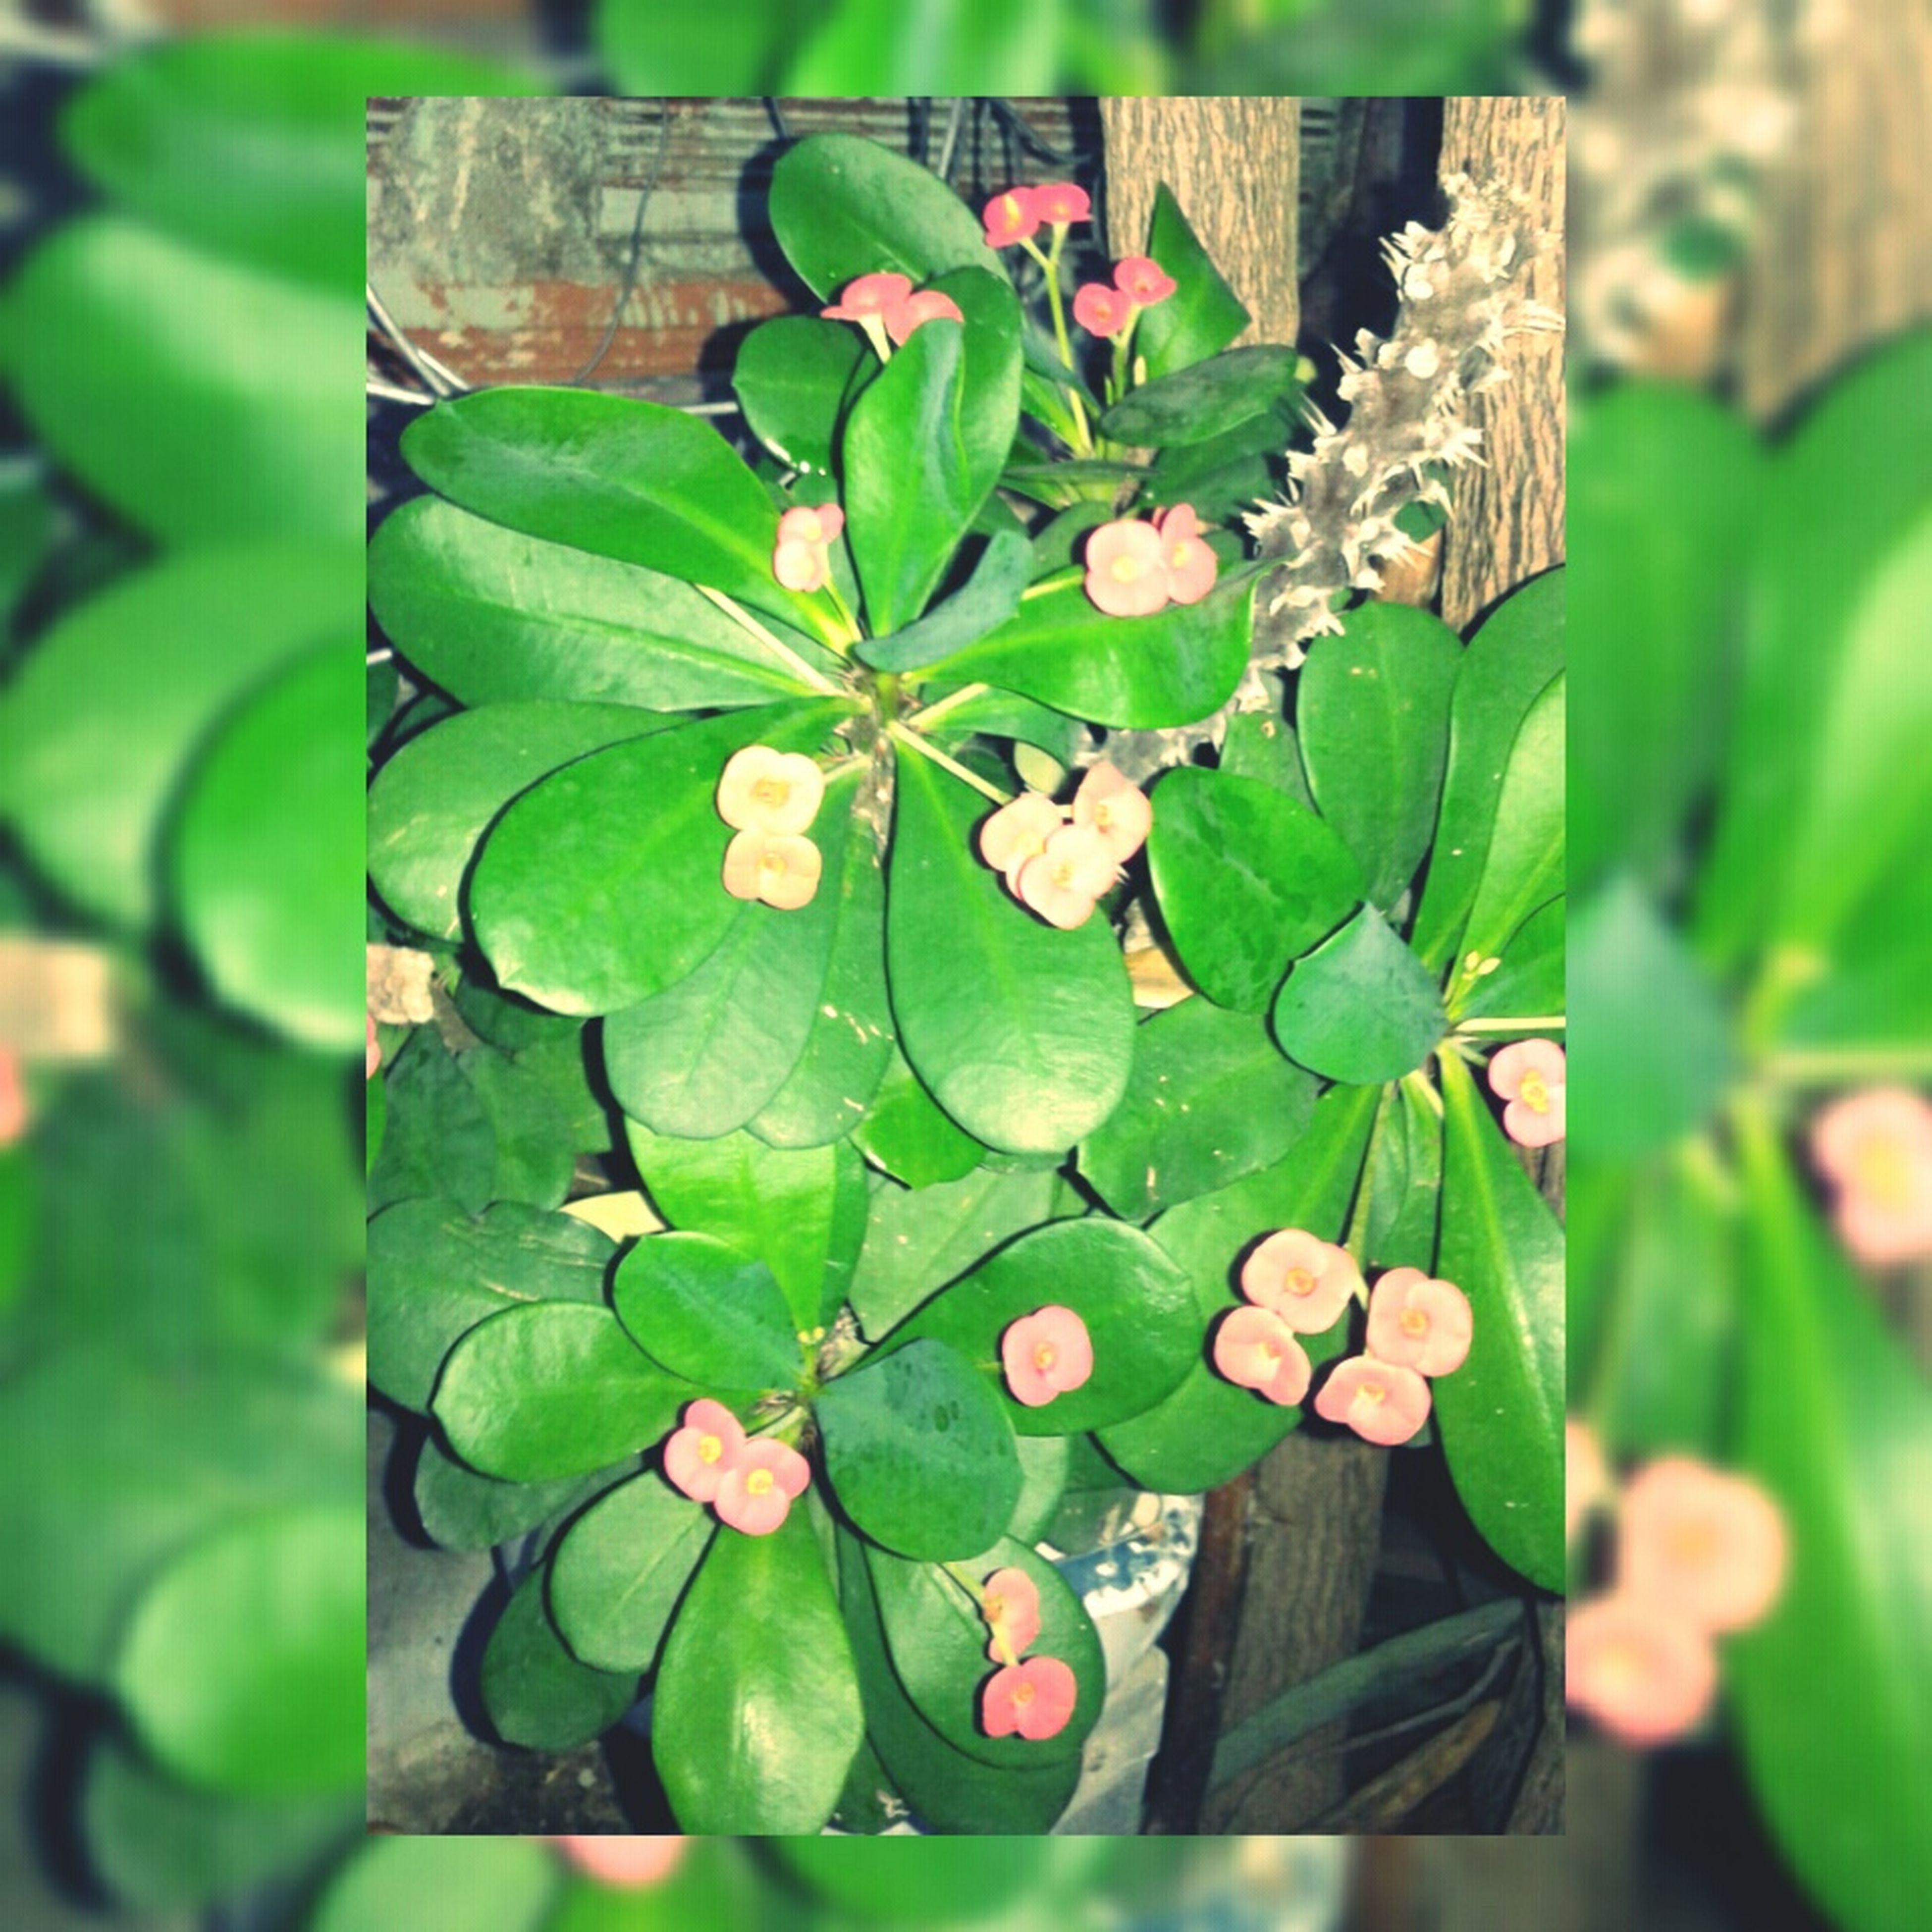 leaf, growth, green color, close-up, plant, focus on foreground, nature, freshness, fragility, beauty in nature, botany, leaf vein, leaves, growing, outdoors, day, green, stem, potted plant, no people